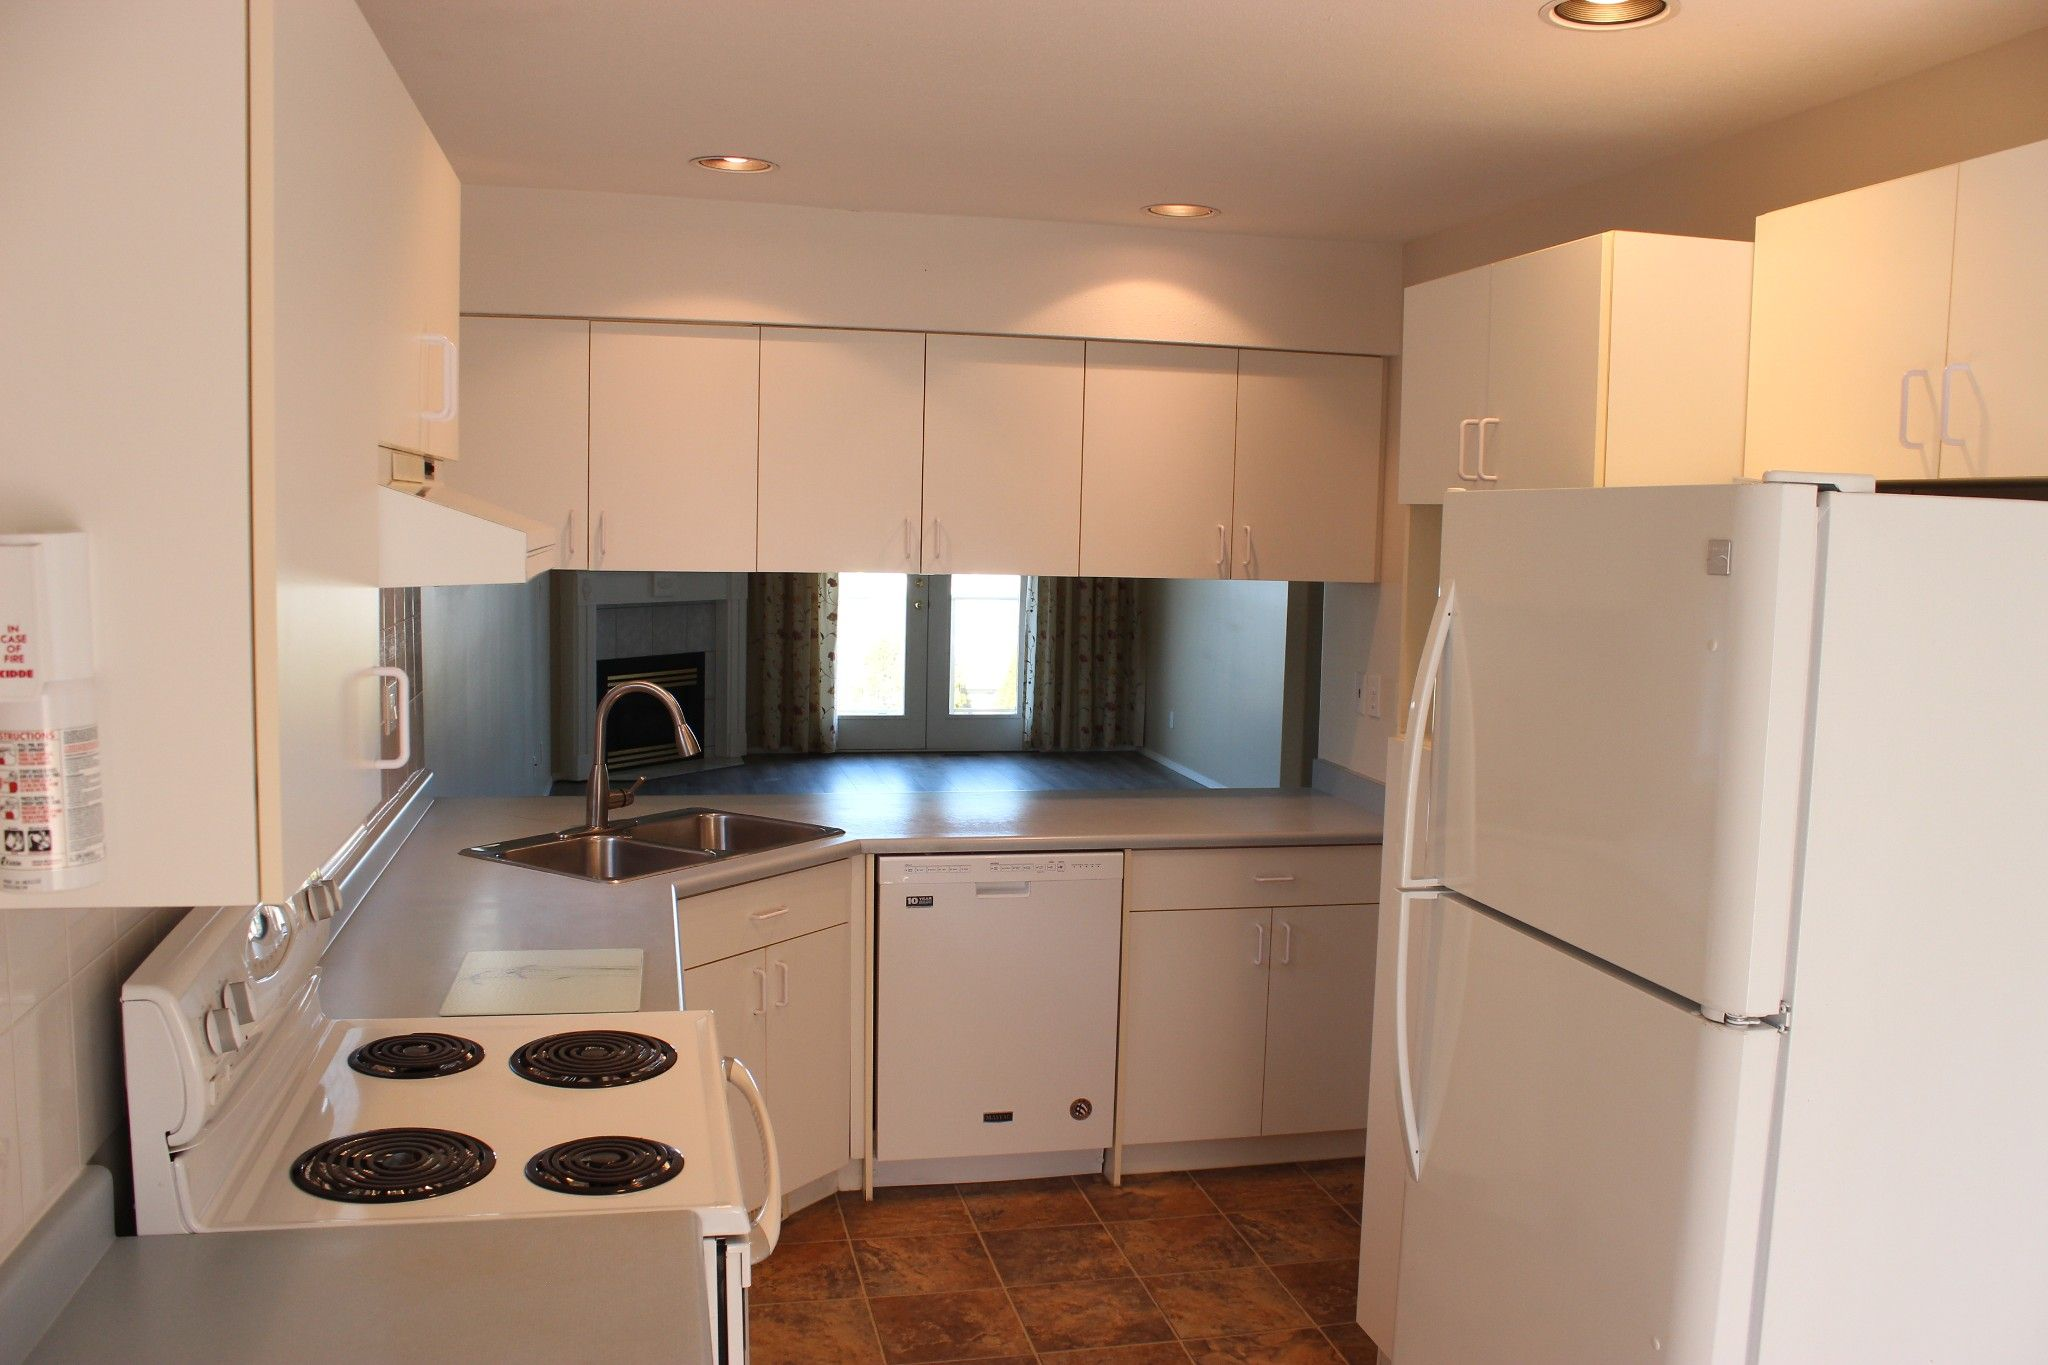 Photo 6: Photos: 4 1580 Springhill Drive in Kamloops: Sahali Townhouse for sale : MLS®# 156043